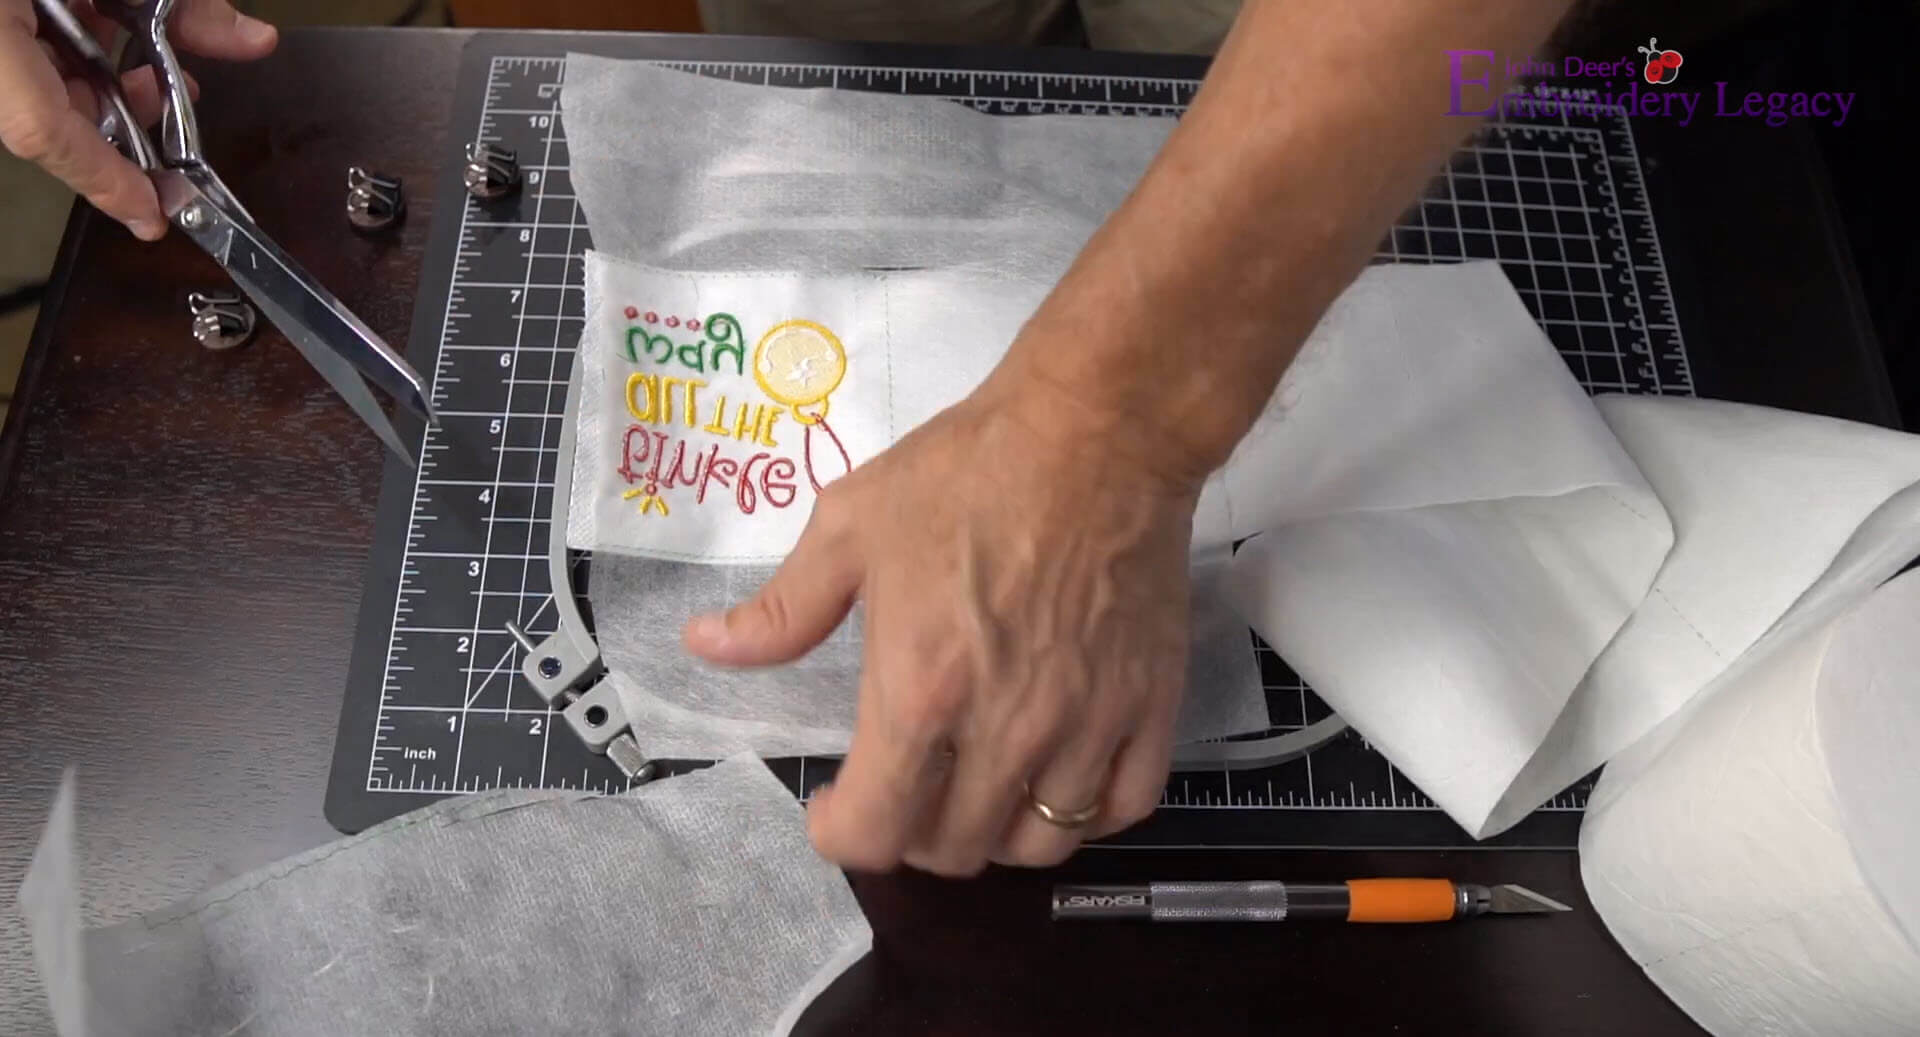 cut stabilzer away from toilet paper